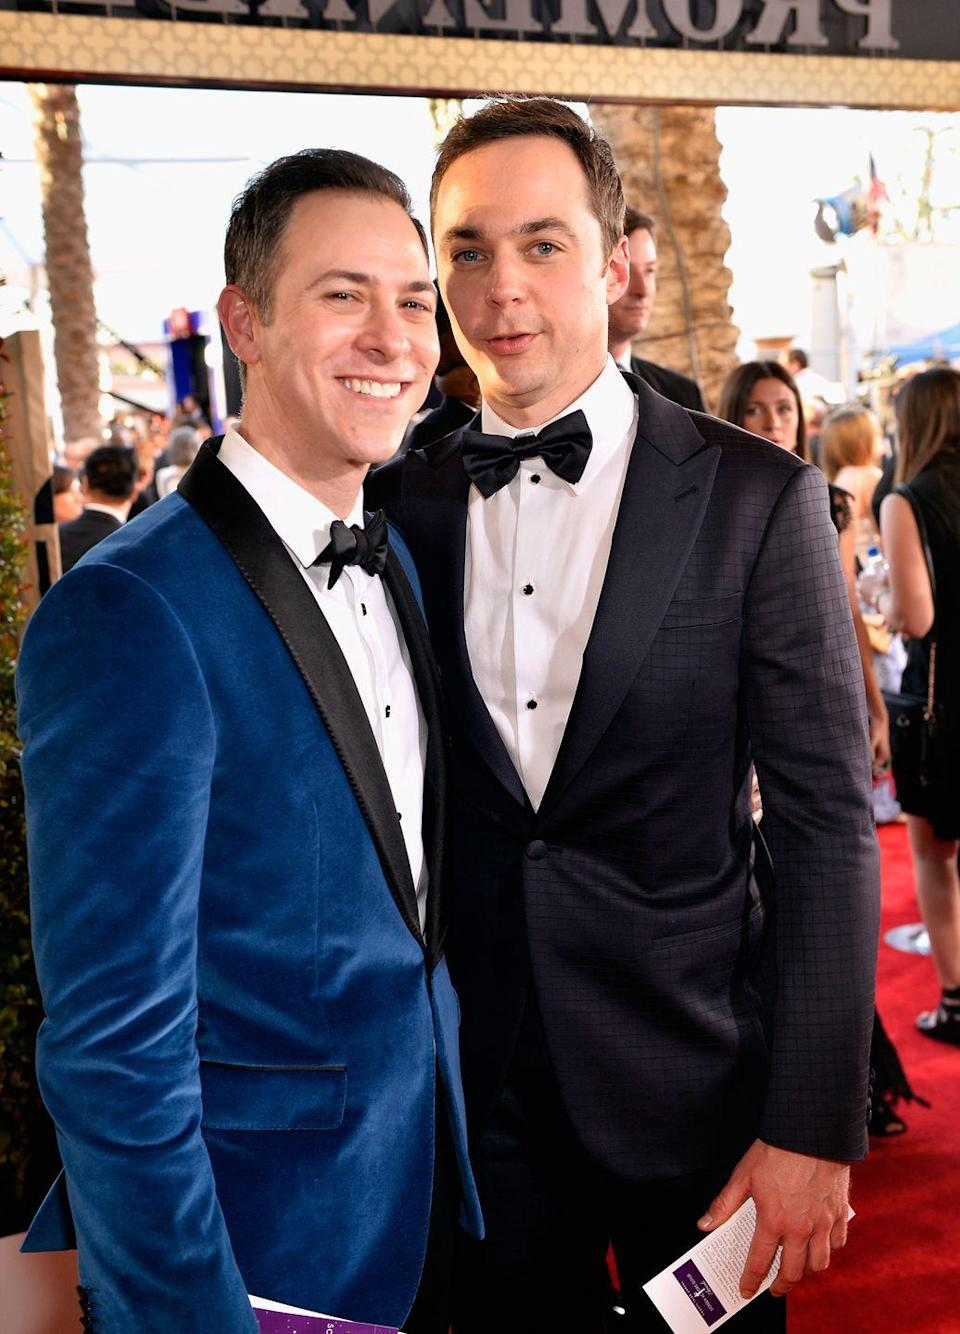 <p>The <em>Big Bang Theory </em>actor and graphic designer Todd Spiewak were dating for over a decade before officially tying the knot in 2017. </p>